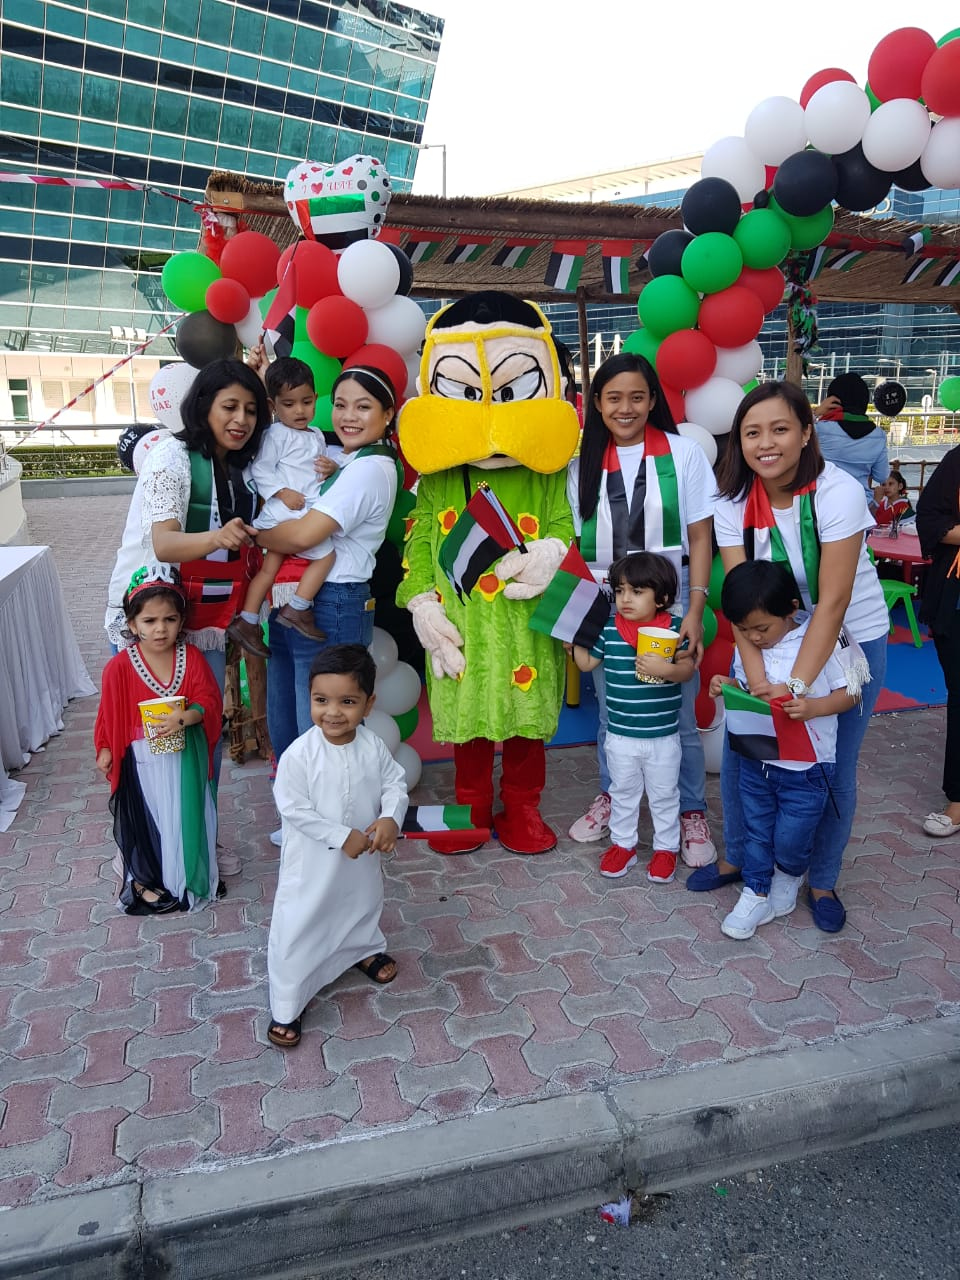 BlueBirdNursery DubaiSouth-National Day Celebration 2019